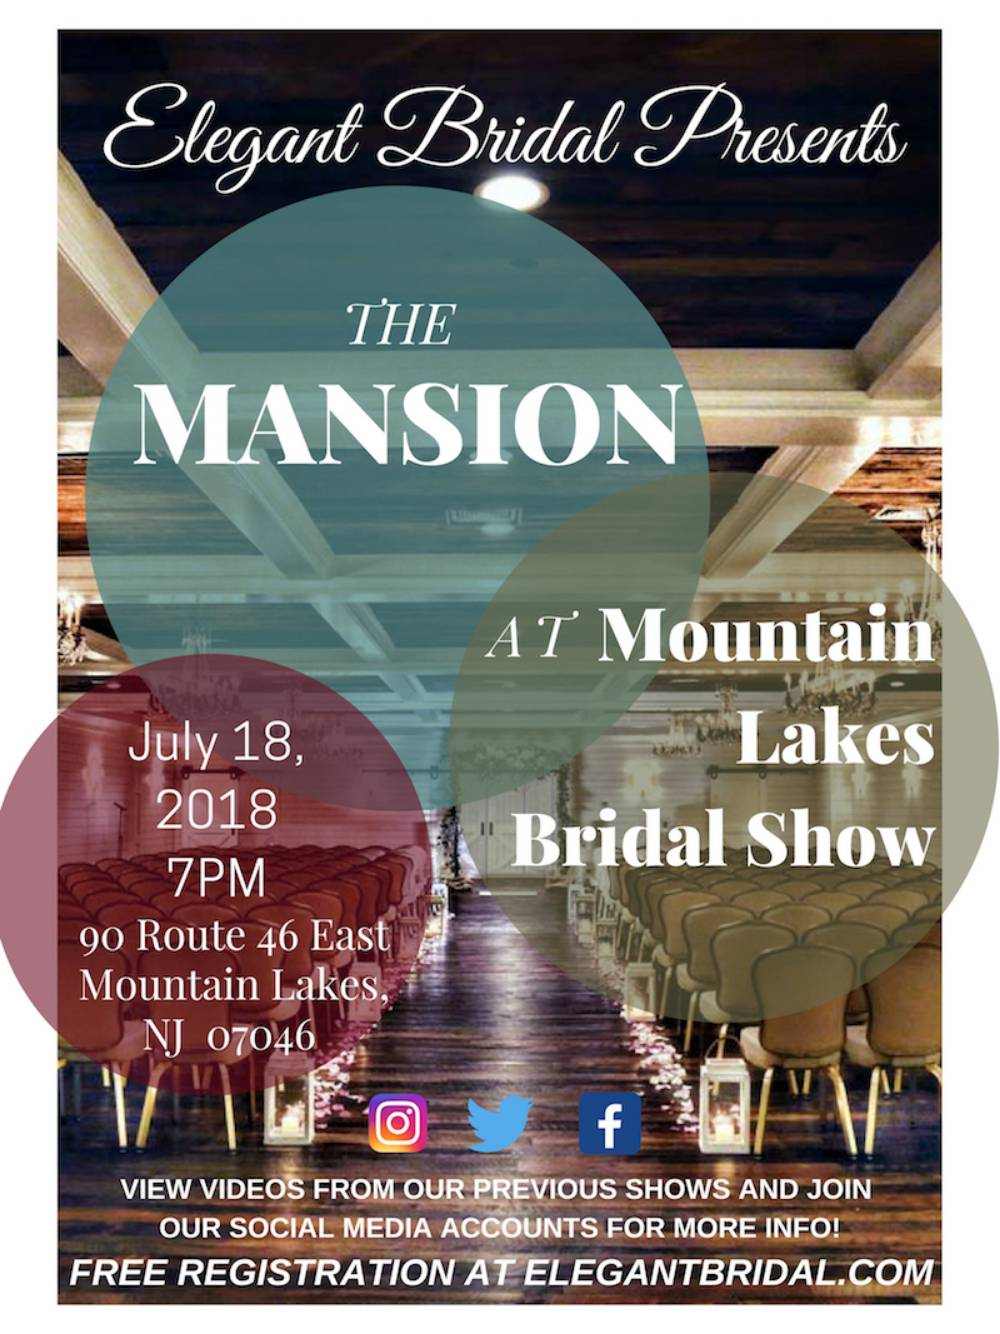 The Mansion at Mountain Lakes Bridal Show